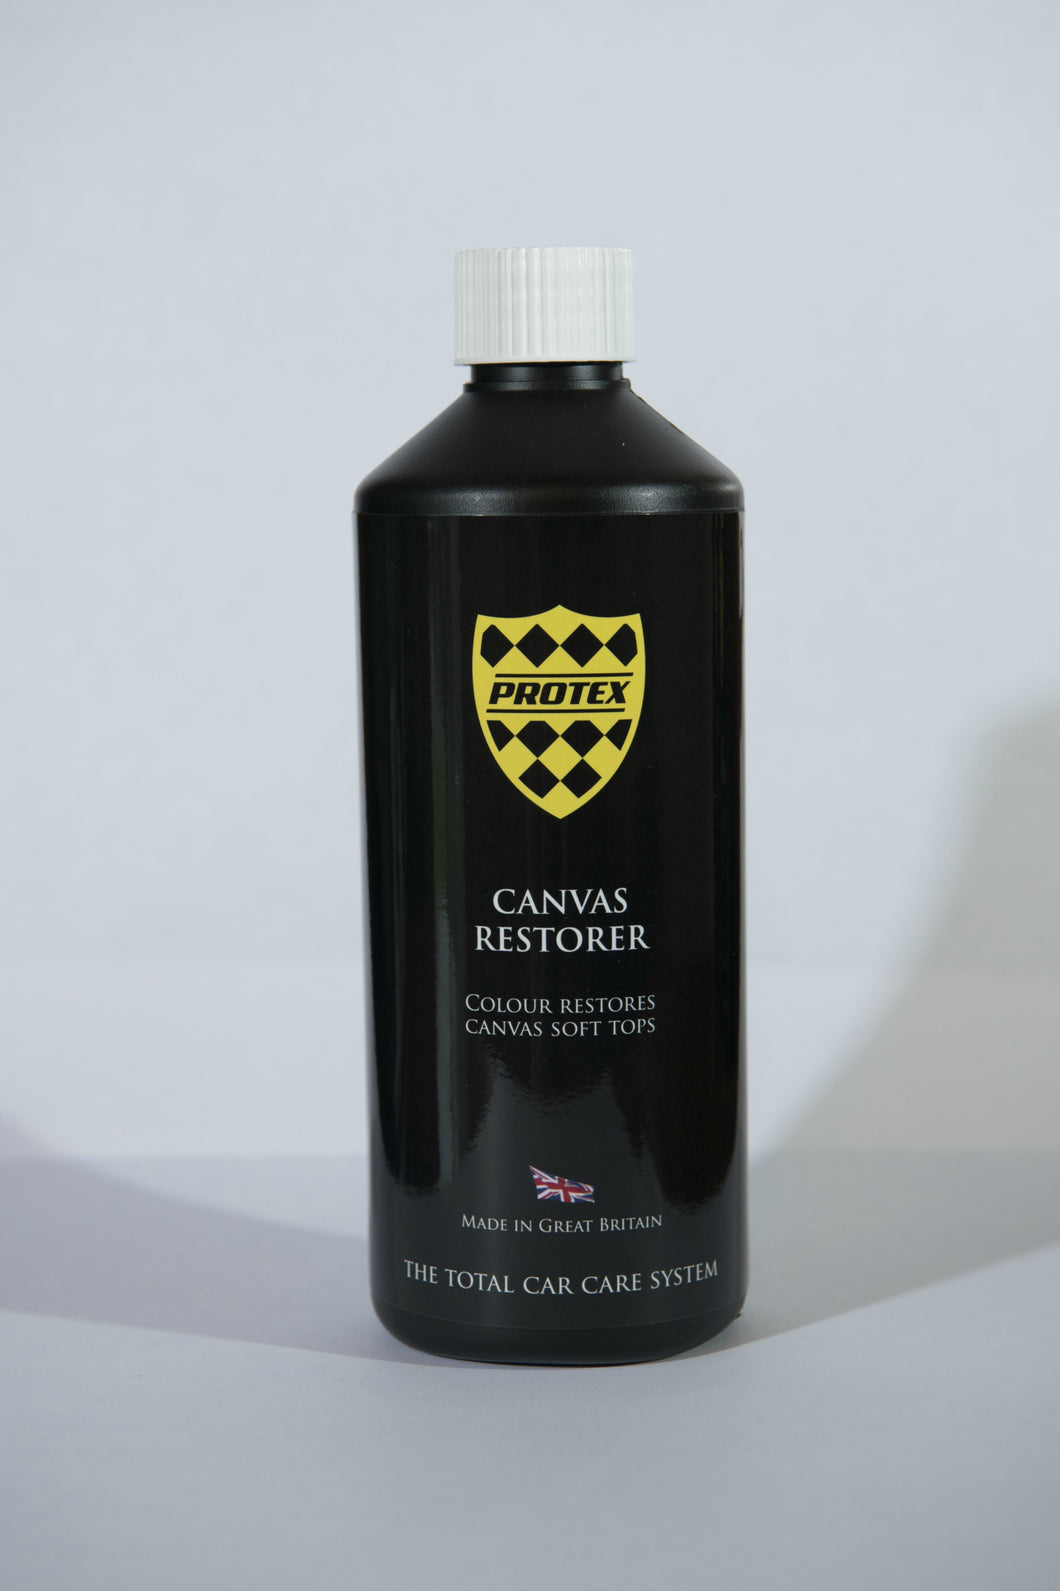 Protex Convertible Soft Top Canvas Restorer - DARK BLUE 1Ltr.